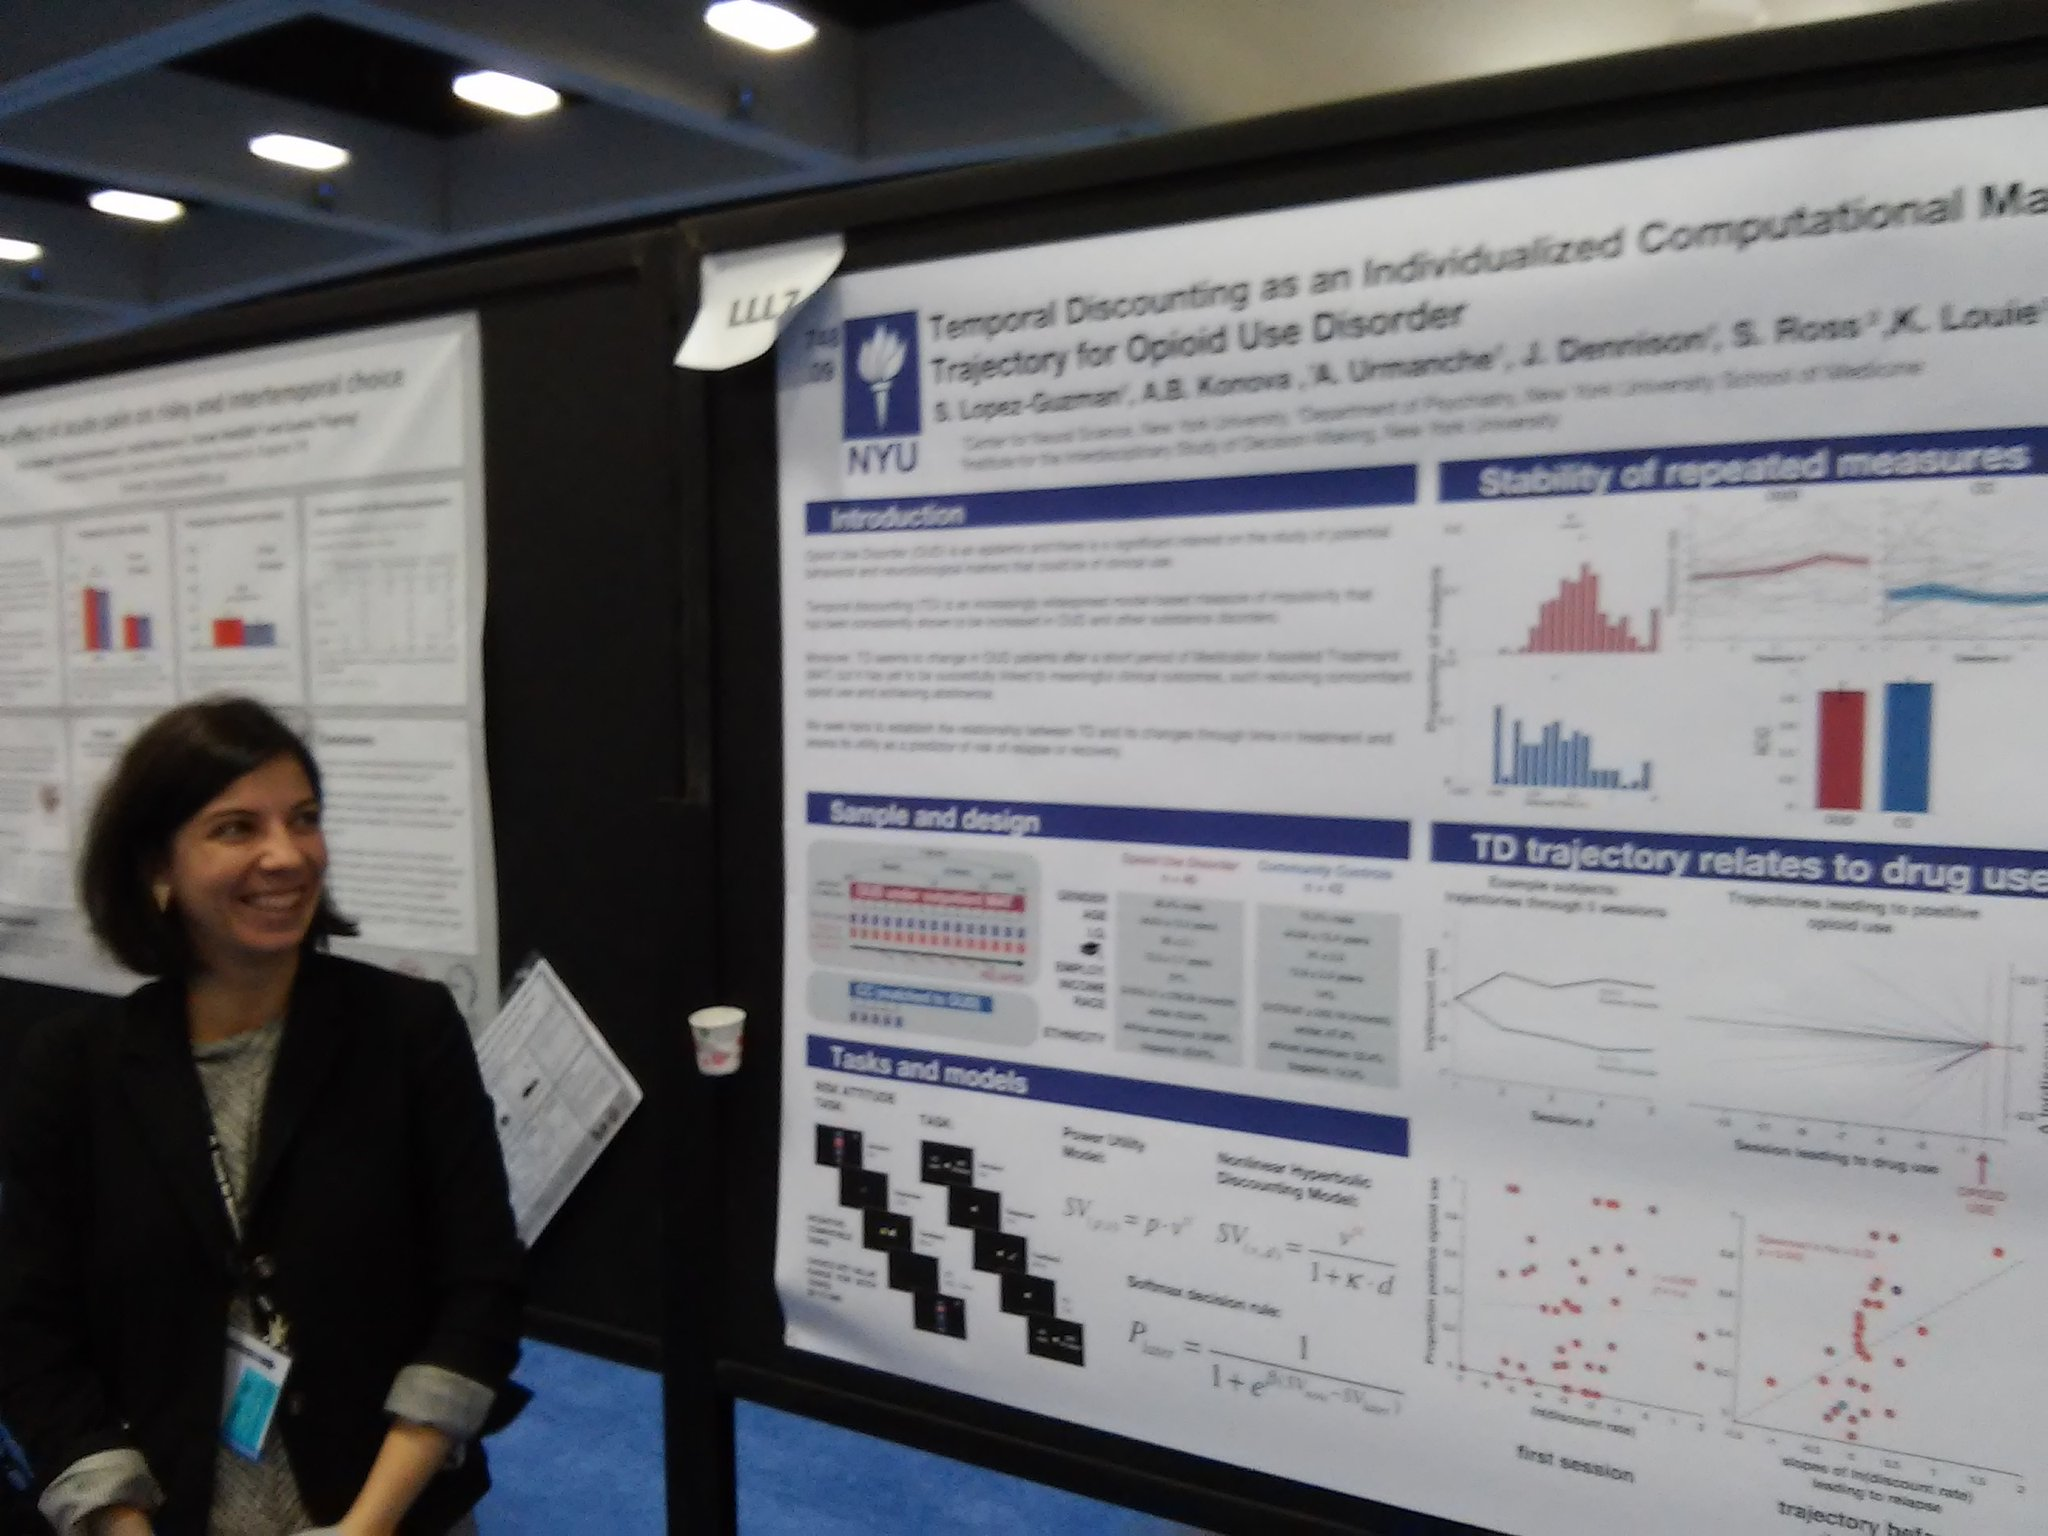 Poster LLL7 Lopez-Guzman: temporal discounting predicts concomitant illicit drug use #sfn16 #plos https://t.co/DkhEdDAPNm